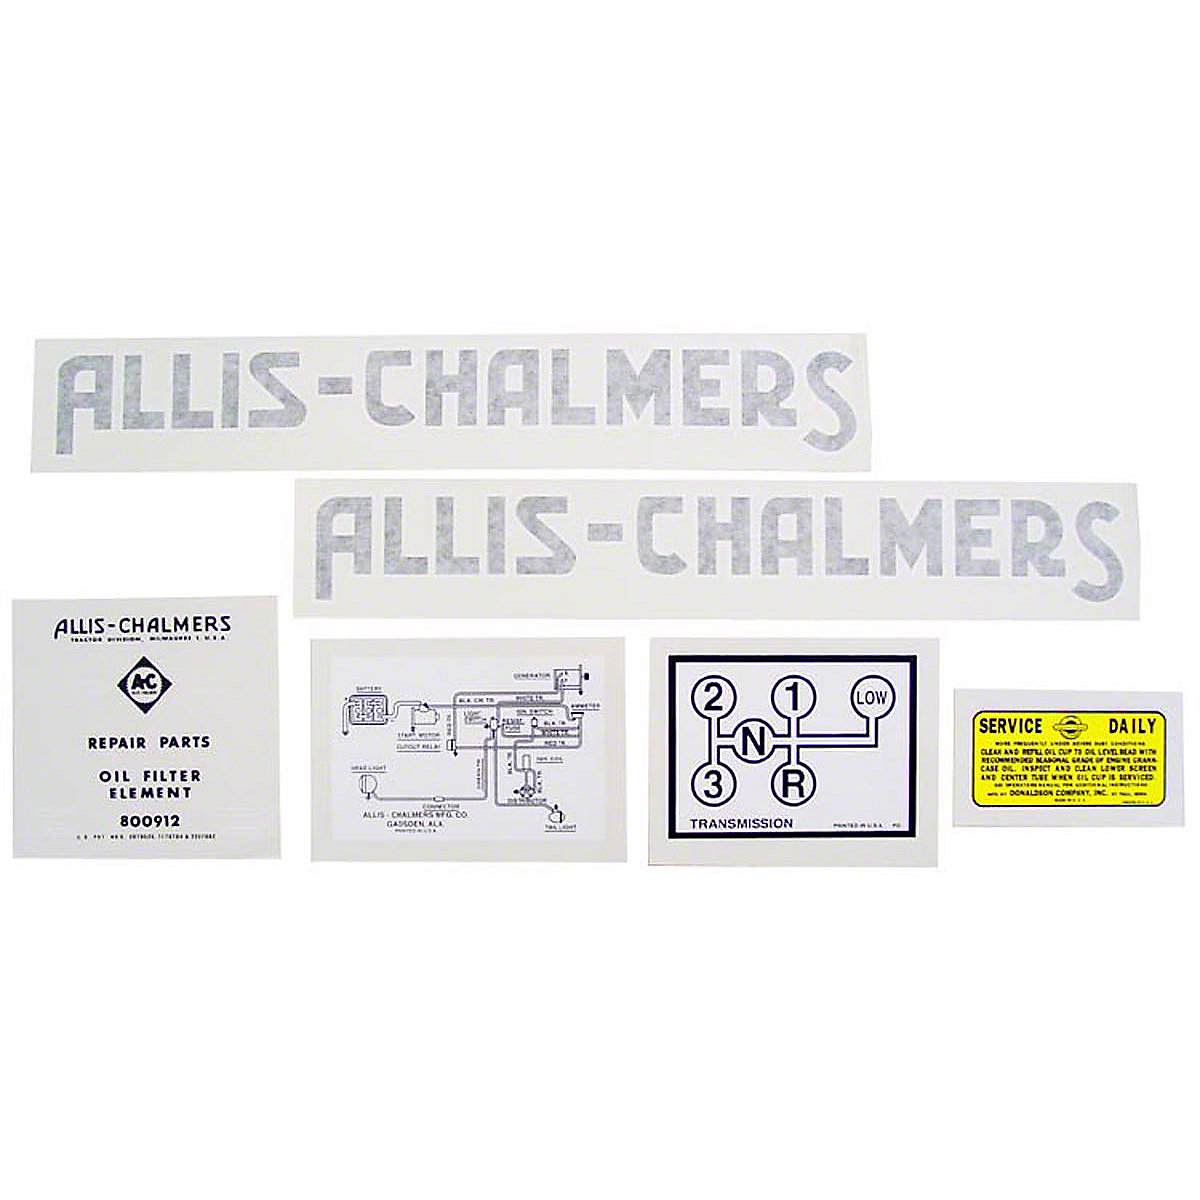 Vinyl Cut Decal Set For Allis Chalmers: G.